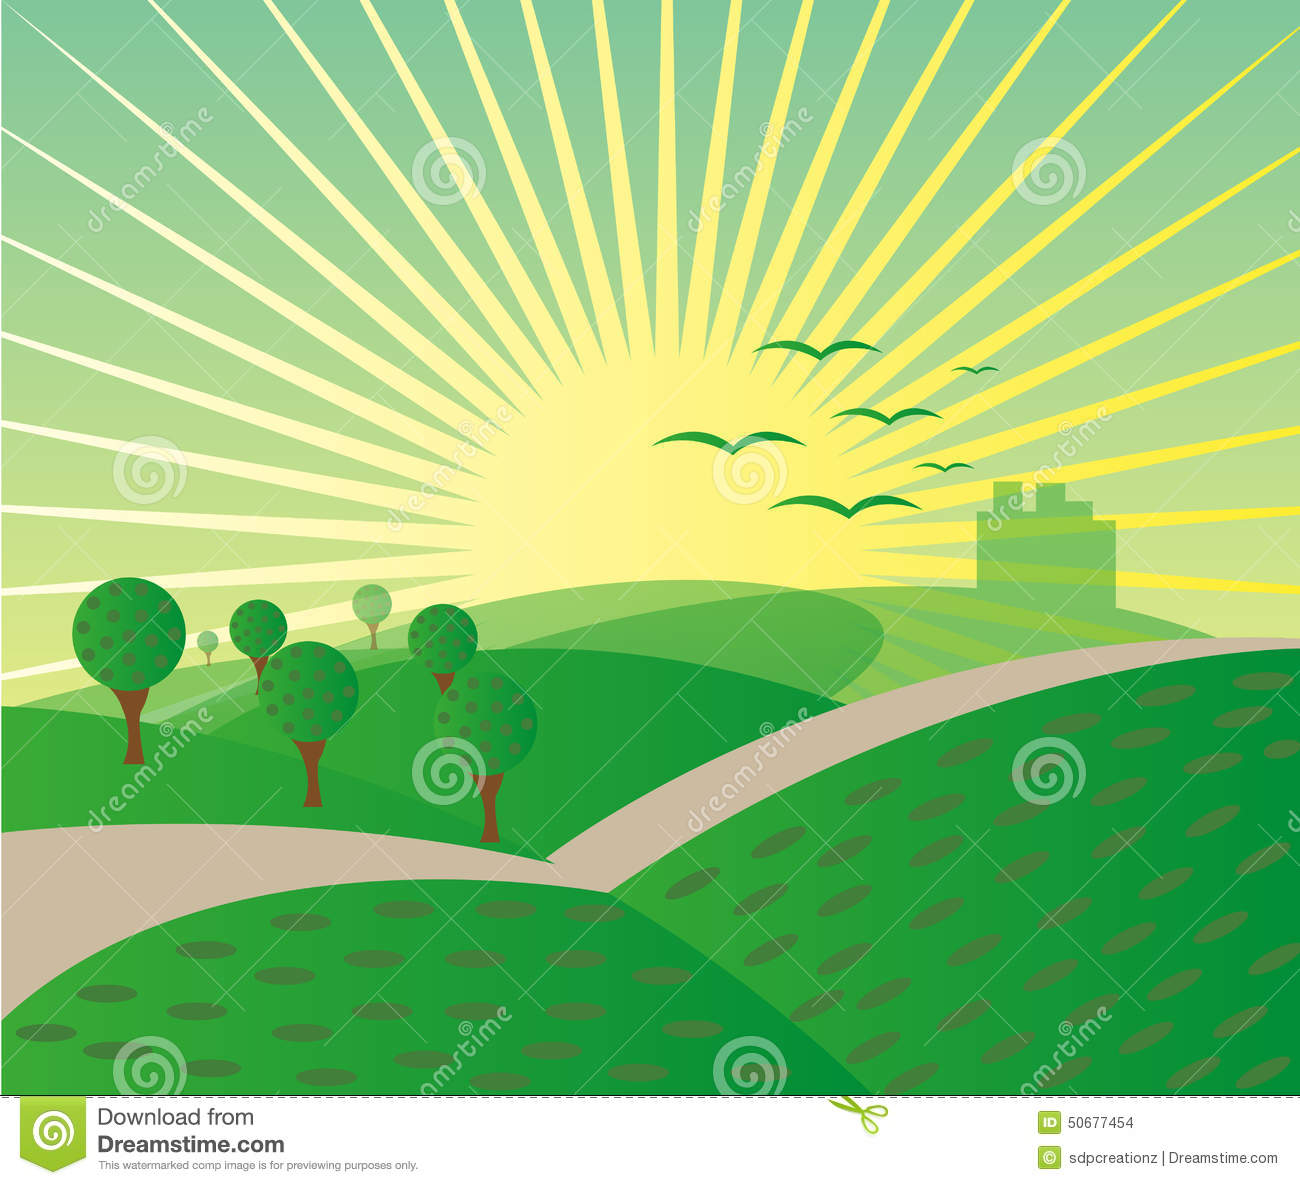 mountain sunrise landscape background stock illustration rh dreamstime com Mountain Silhouette Clip Art Simple Mountain Clip Art